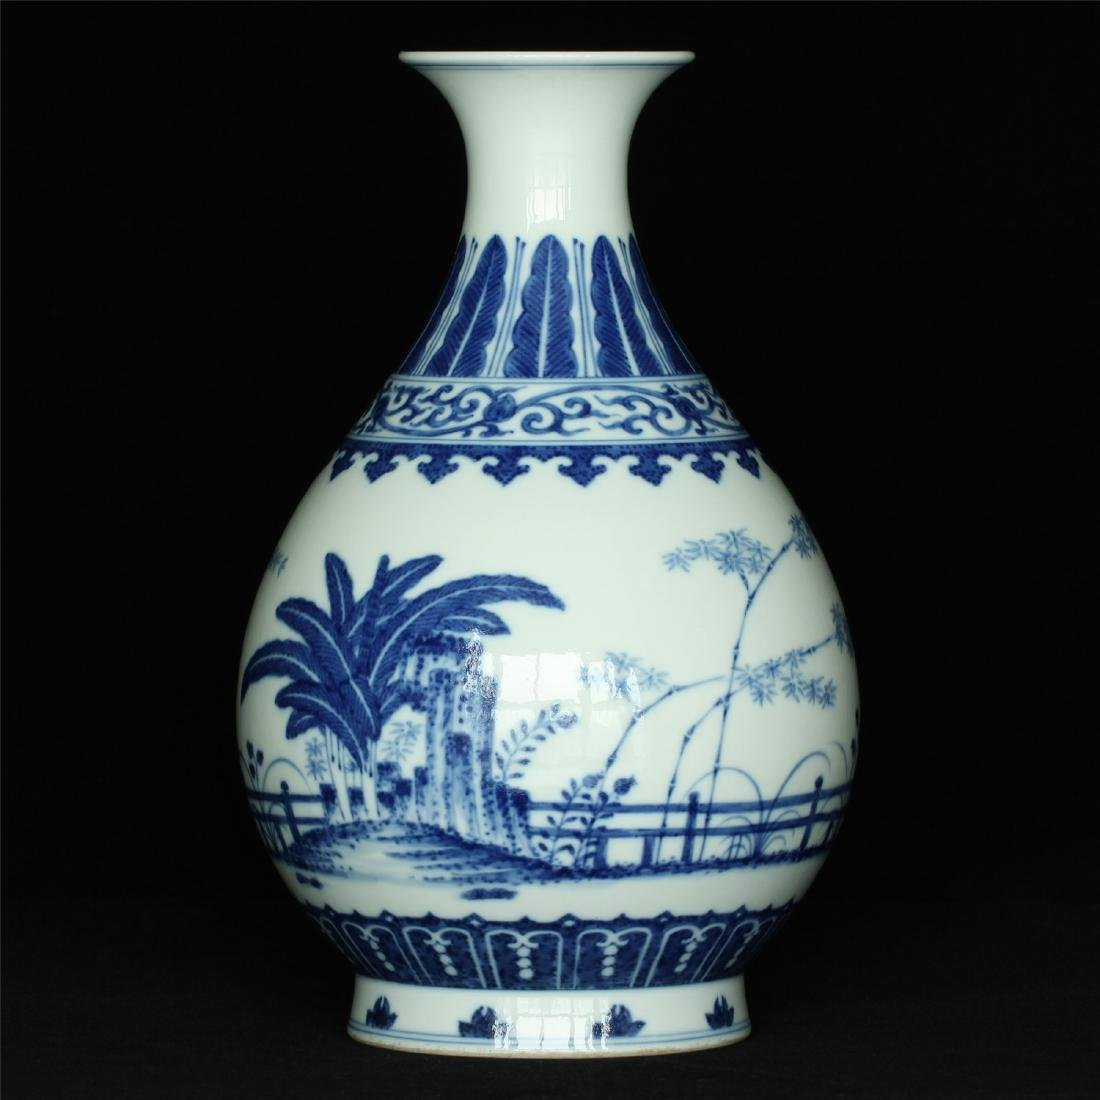 Blue and white porcelain vase of Qing Dynasty GuangXu